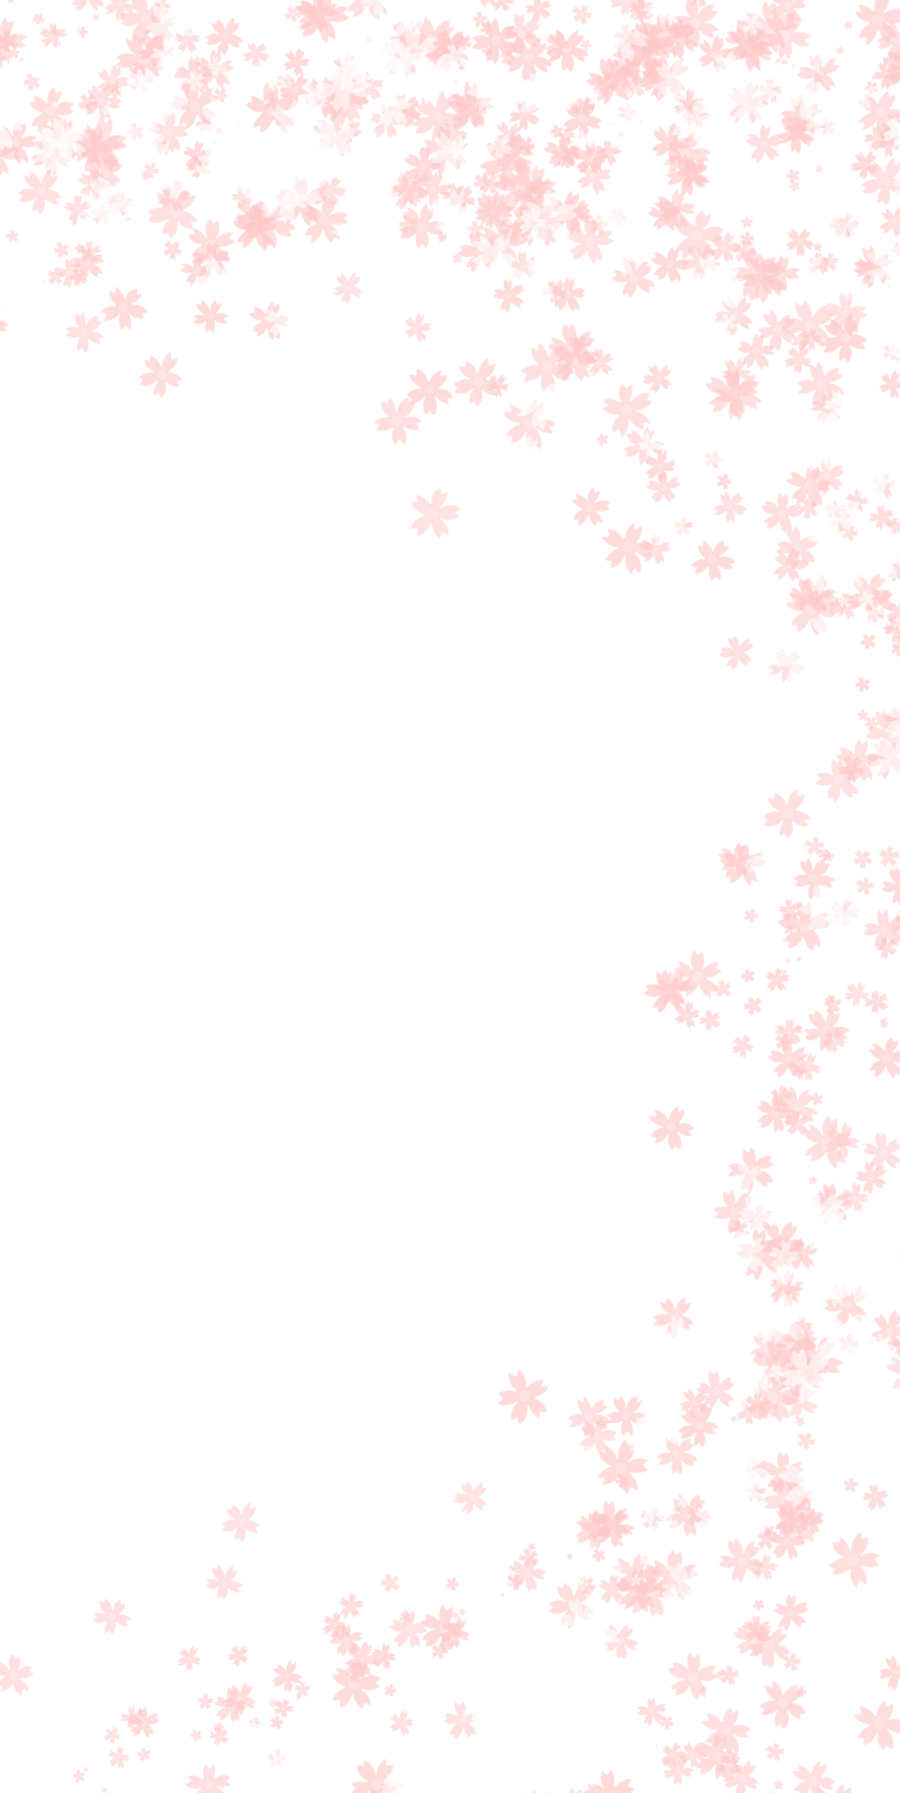 Cherry Blossom Png - Cliparts.co